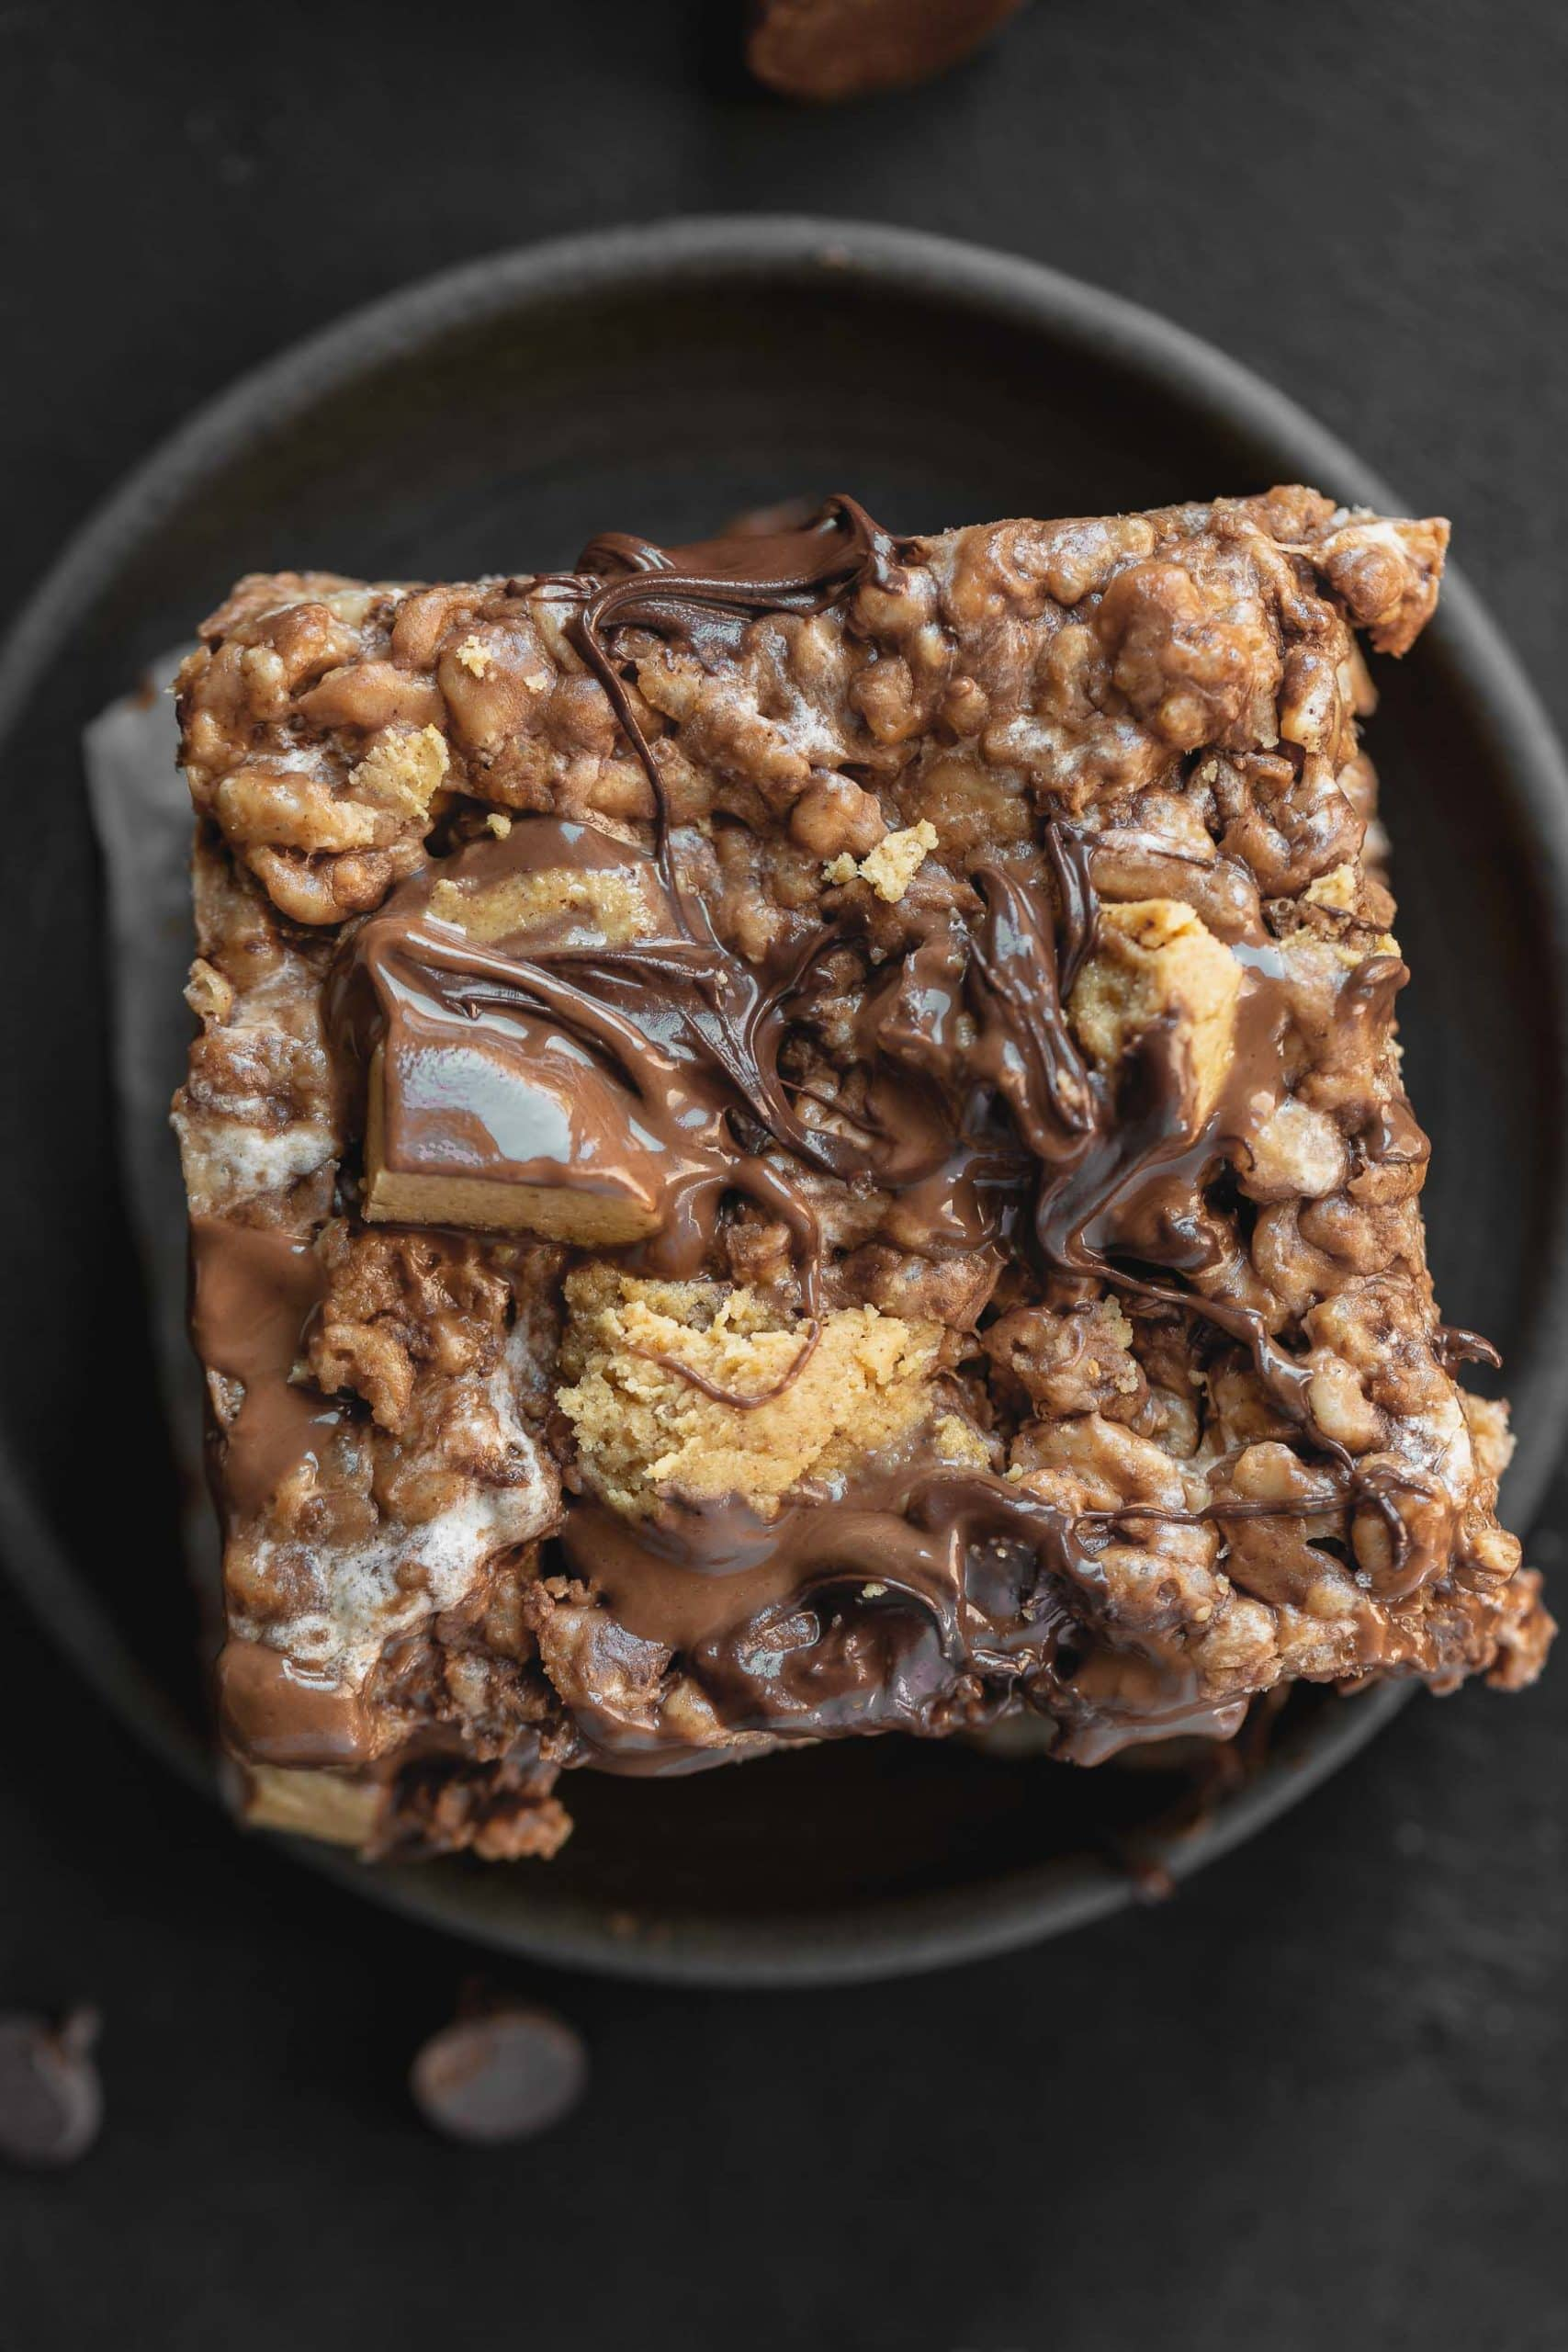 a photo of a single peanut butter rice krispies treat topped with chunks of chopped up reese's peanut butter cups and melted chocolate chips on a dark gray plate